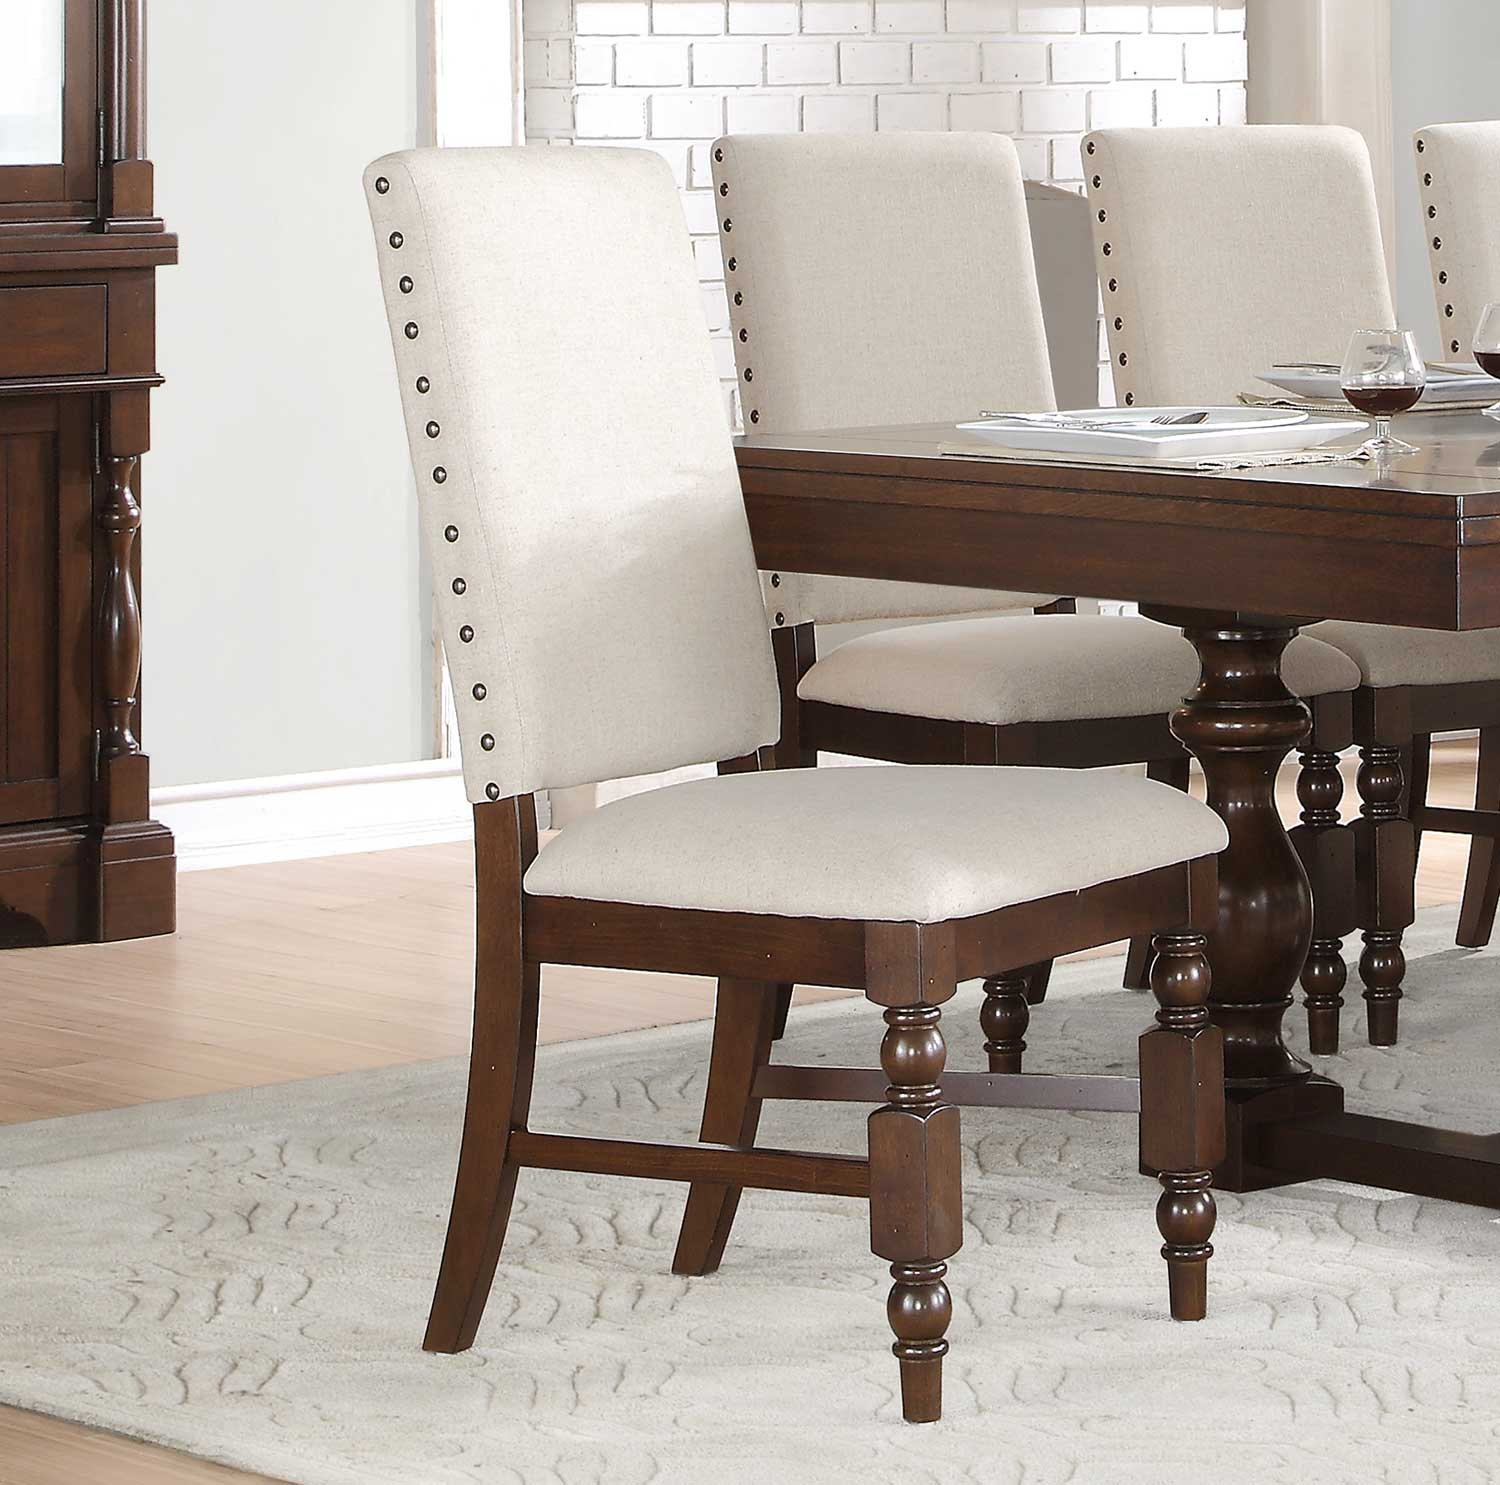 Homelegance Yates Side Chair - Dark Oak